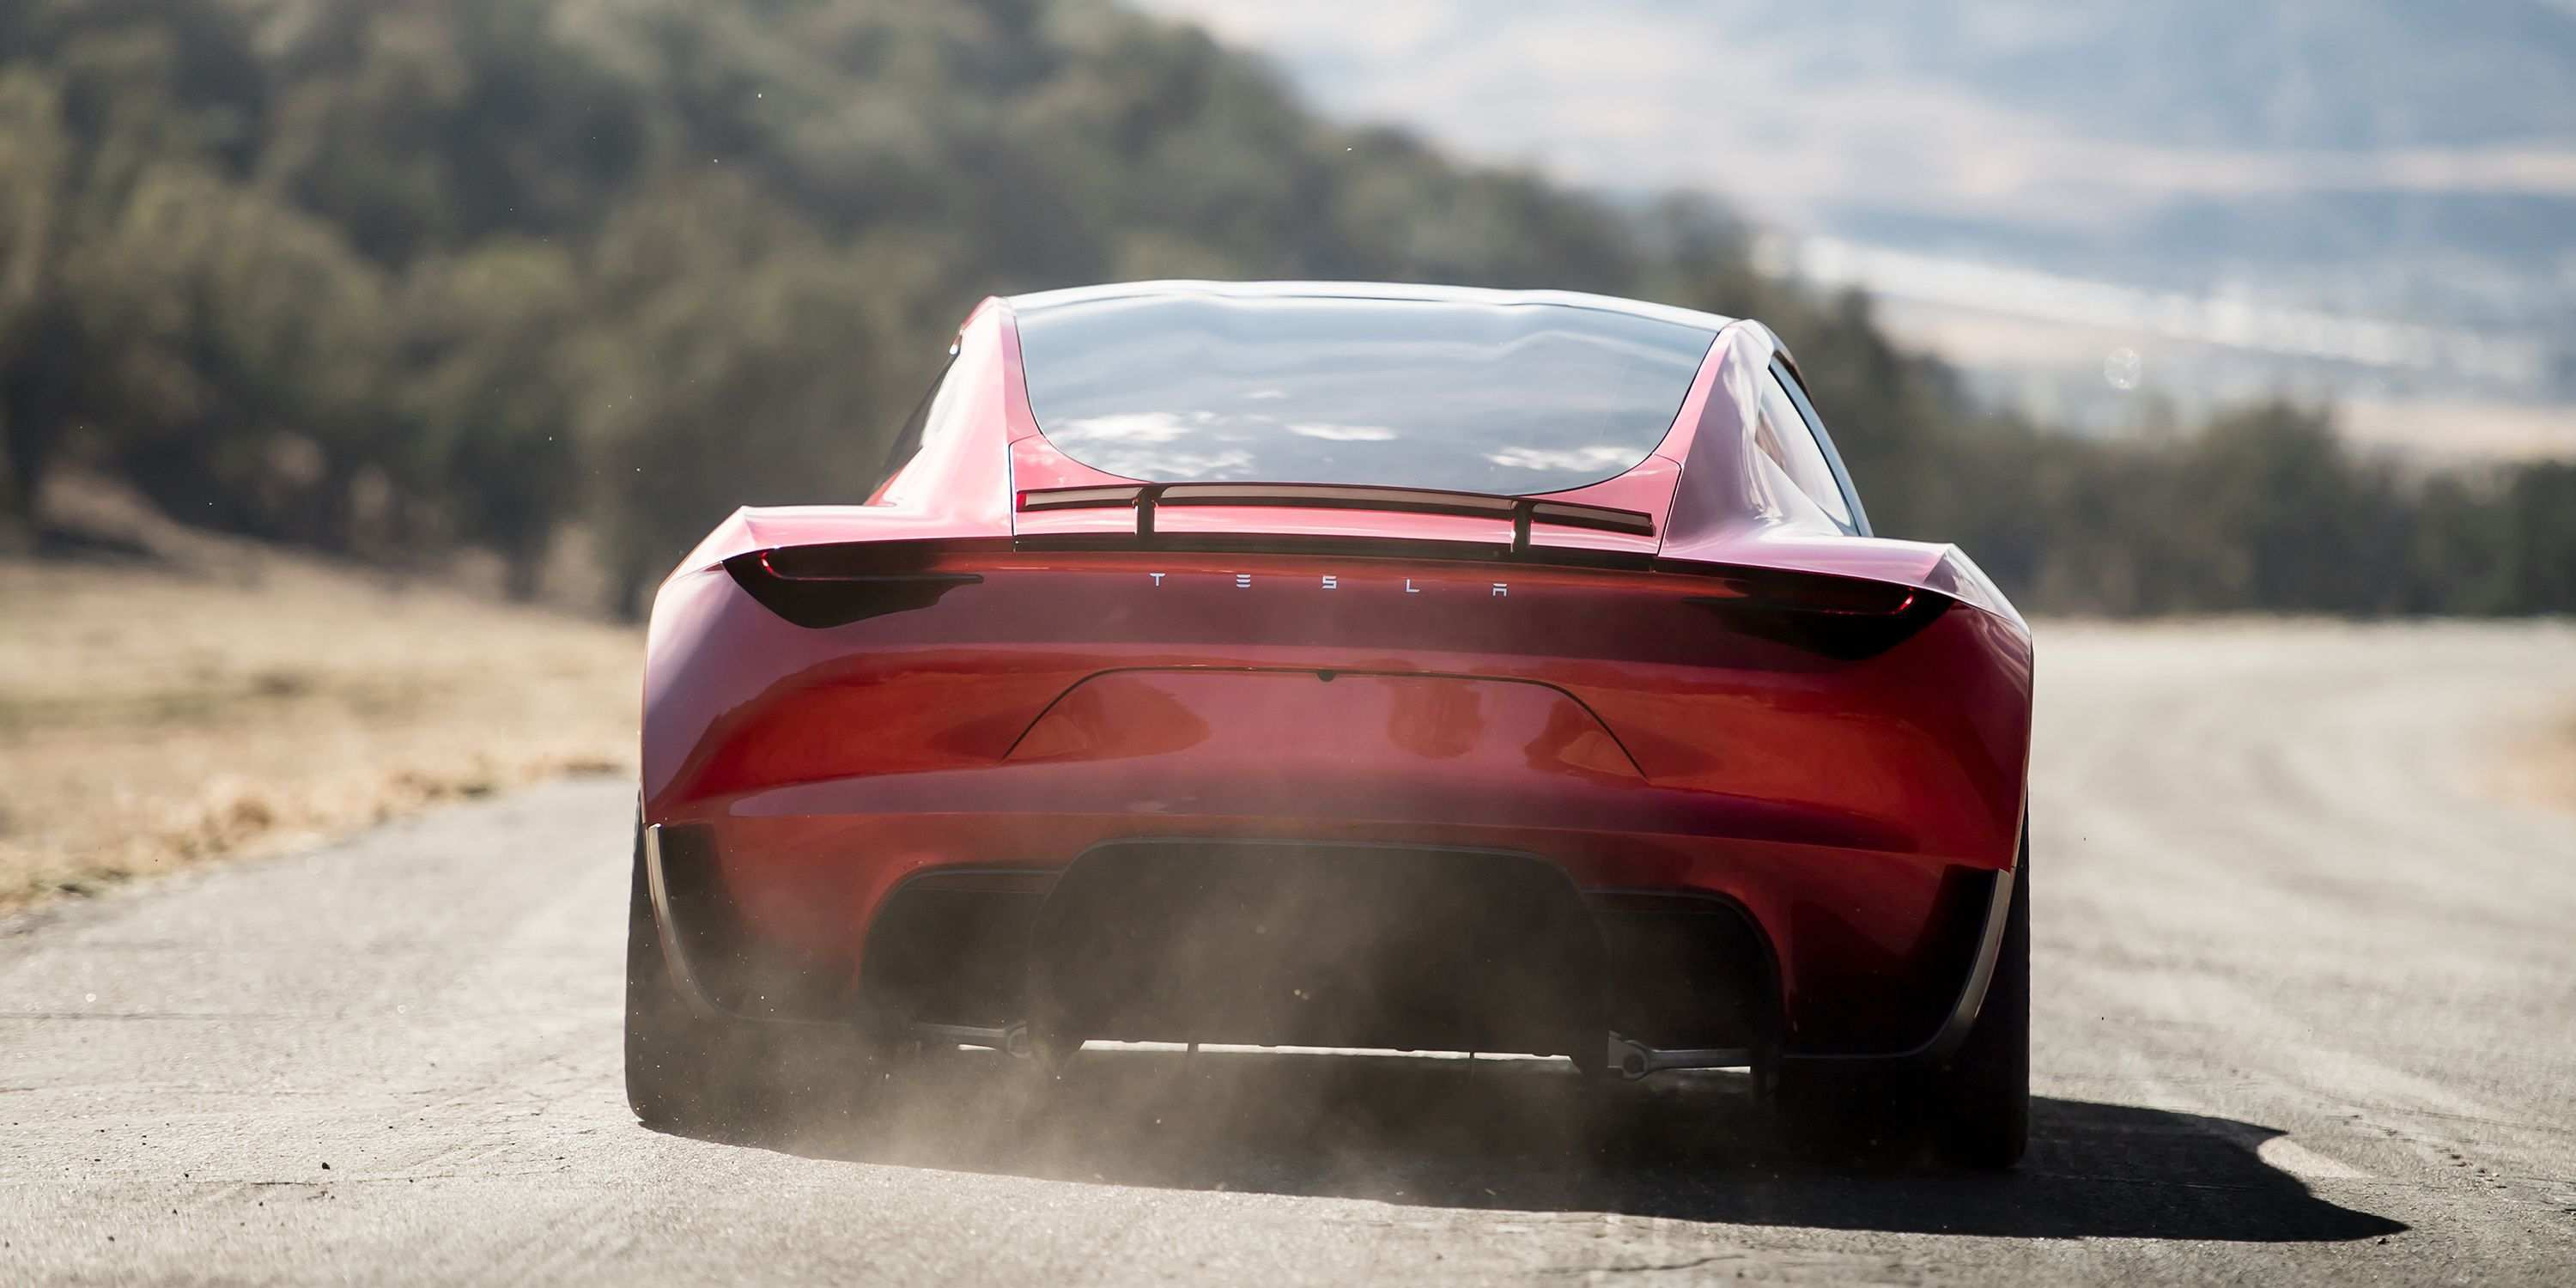 63 All New 2019 Tesla Roadster Torque Pictures with 2019 Tesla Roadster Torque